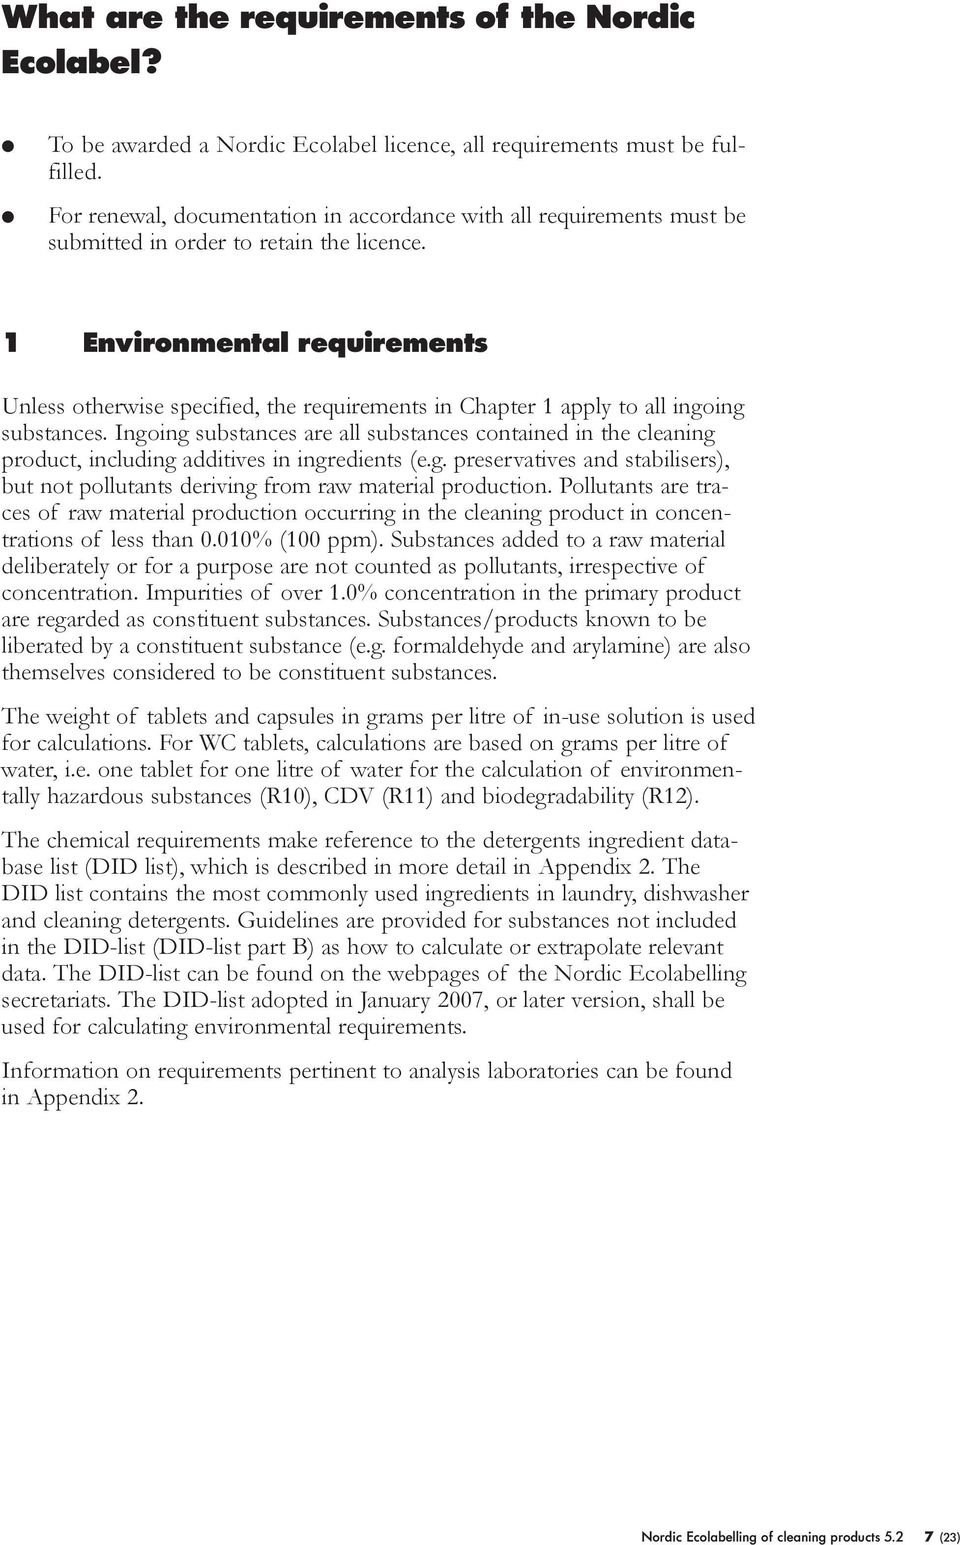 1 Environmenta requirements Uness otherwise specified, the requirements in Chapter 1 appy to a ingoing substances.